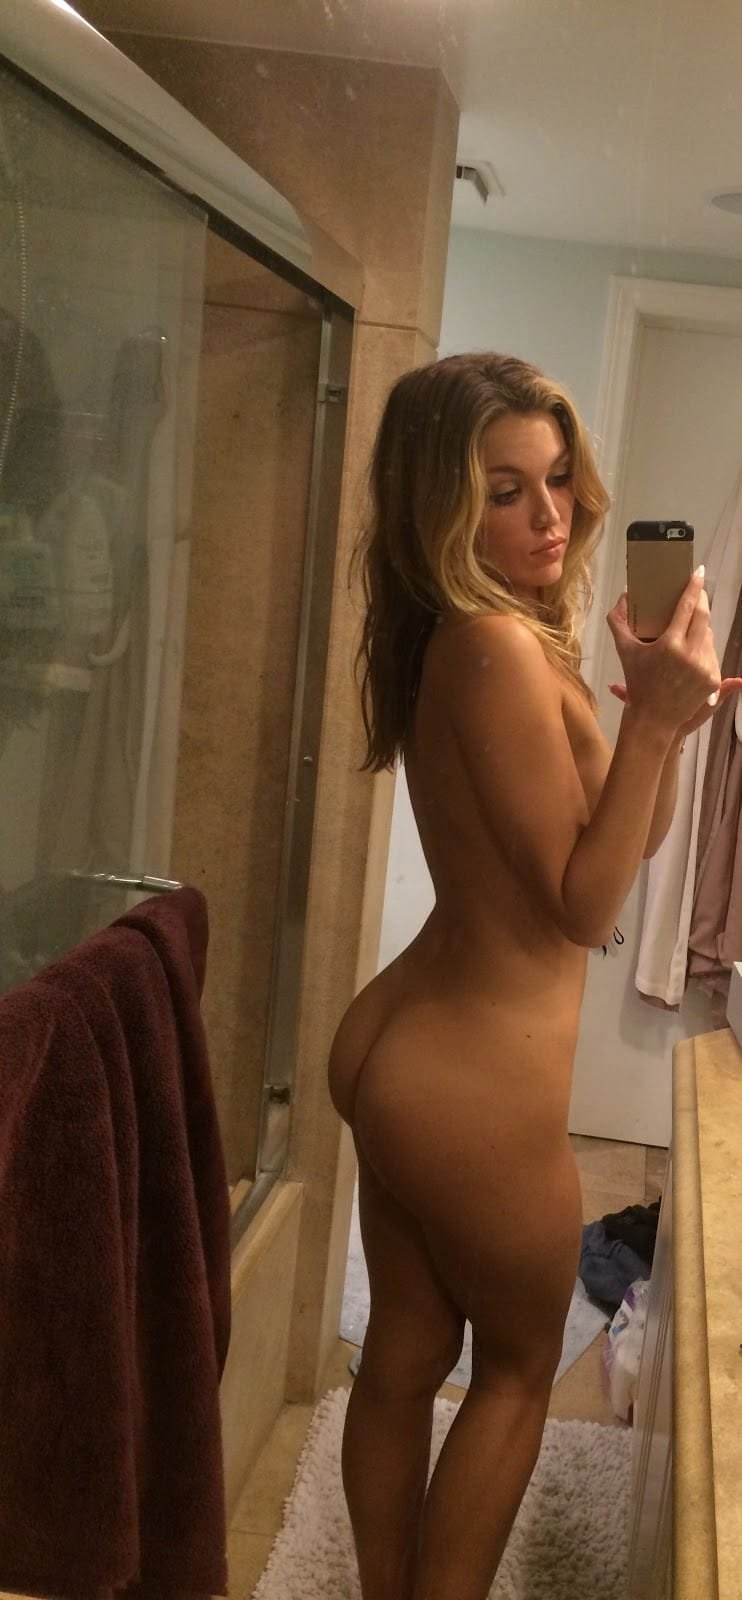 Lili Simmons completely bare in bathroom